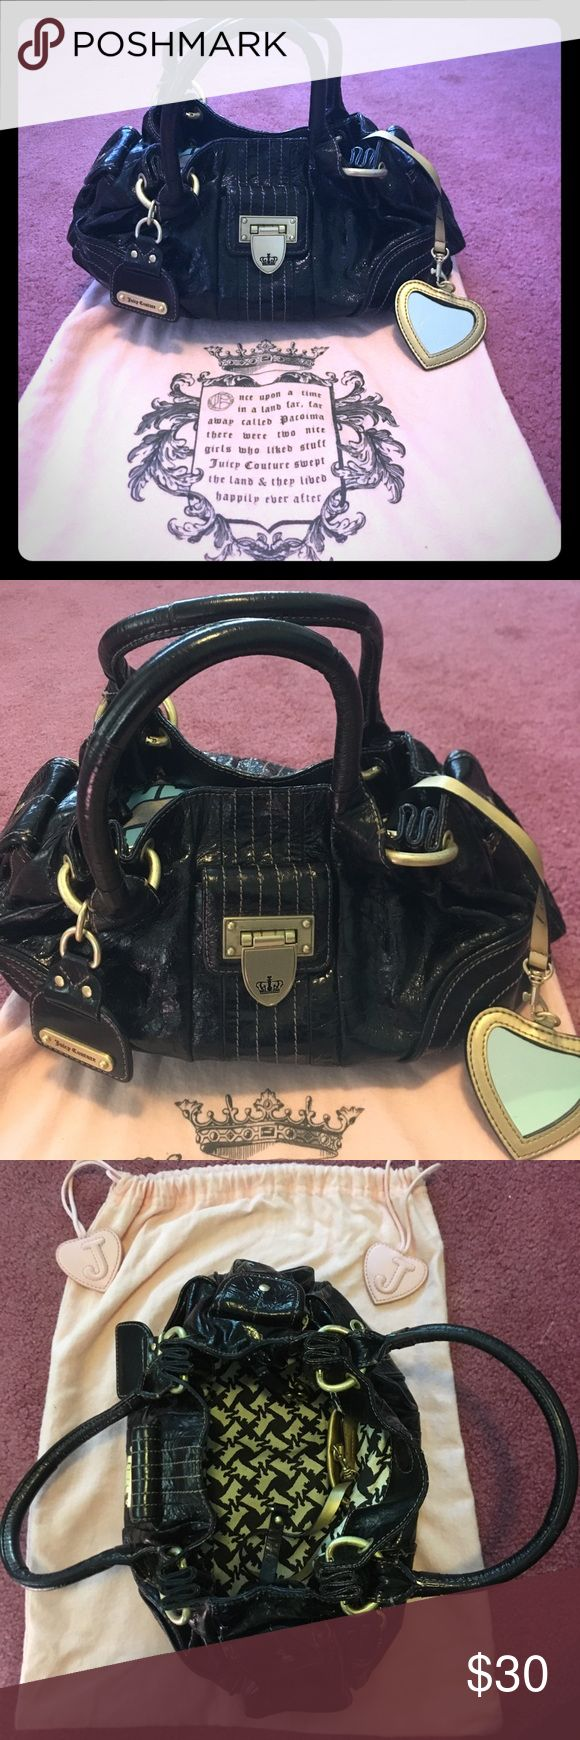 Juicy Couture handbag Gently used. All black with gold detailing. Juicy Couture Bags Mini Bags